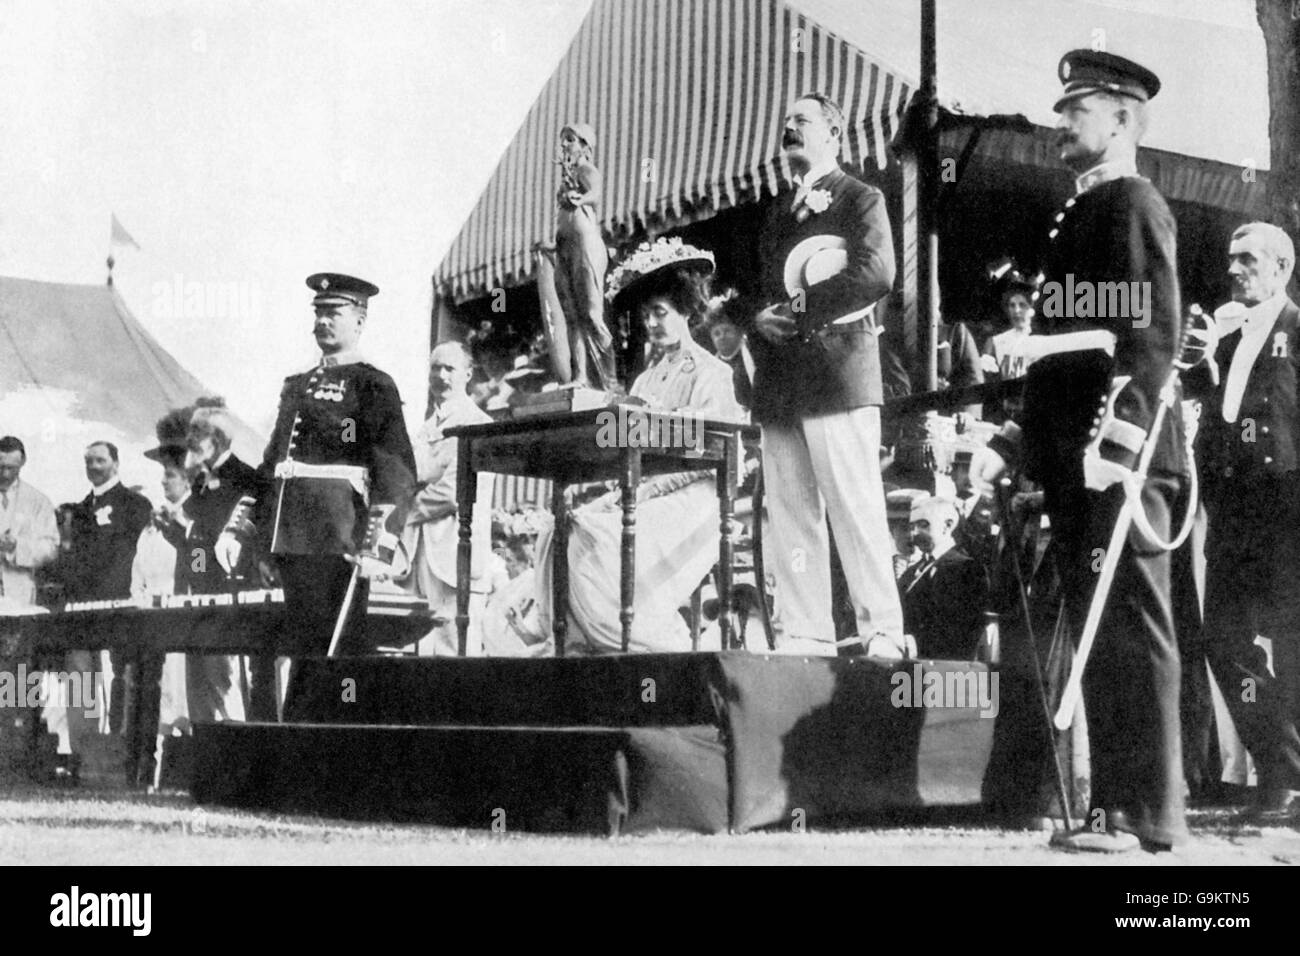 Rowing - London Olympic Games 1908 - Henley - Stock Image